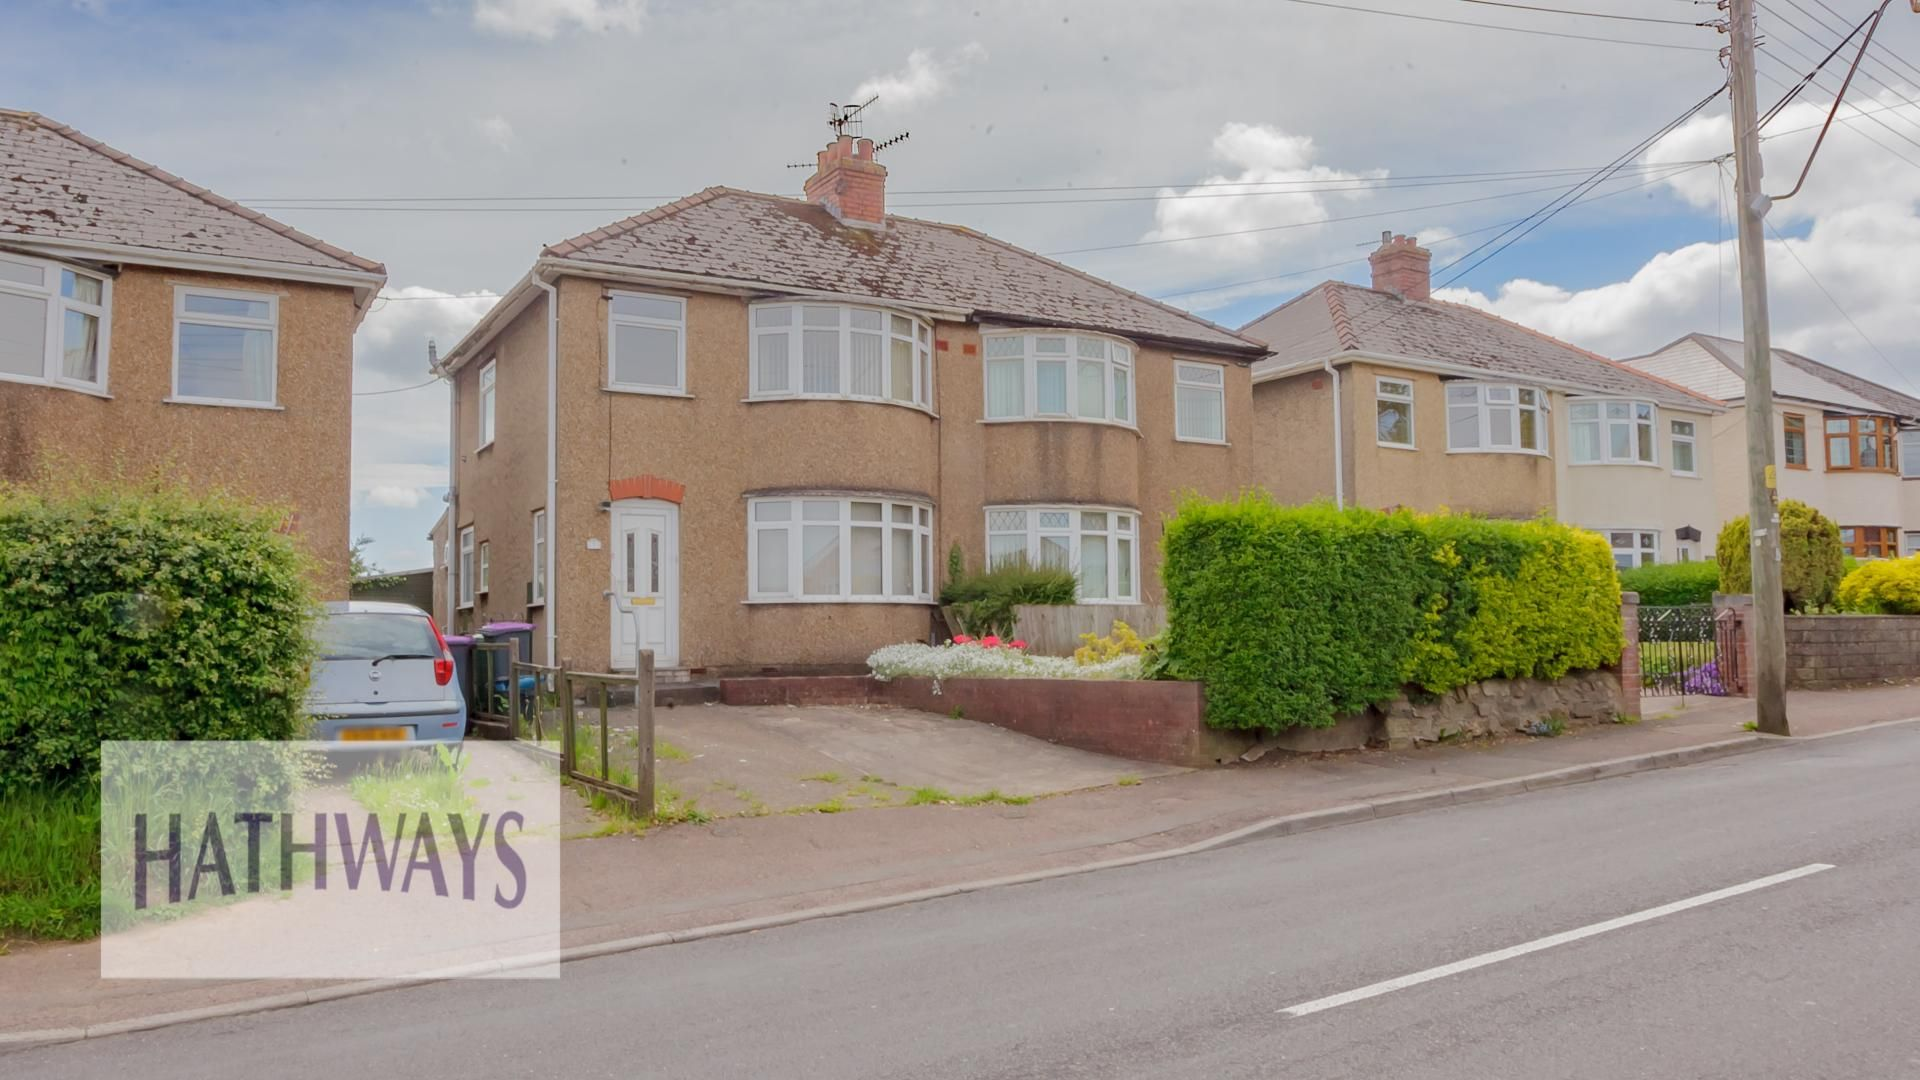 3 bed house for sale in Five Locks Road, NP44